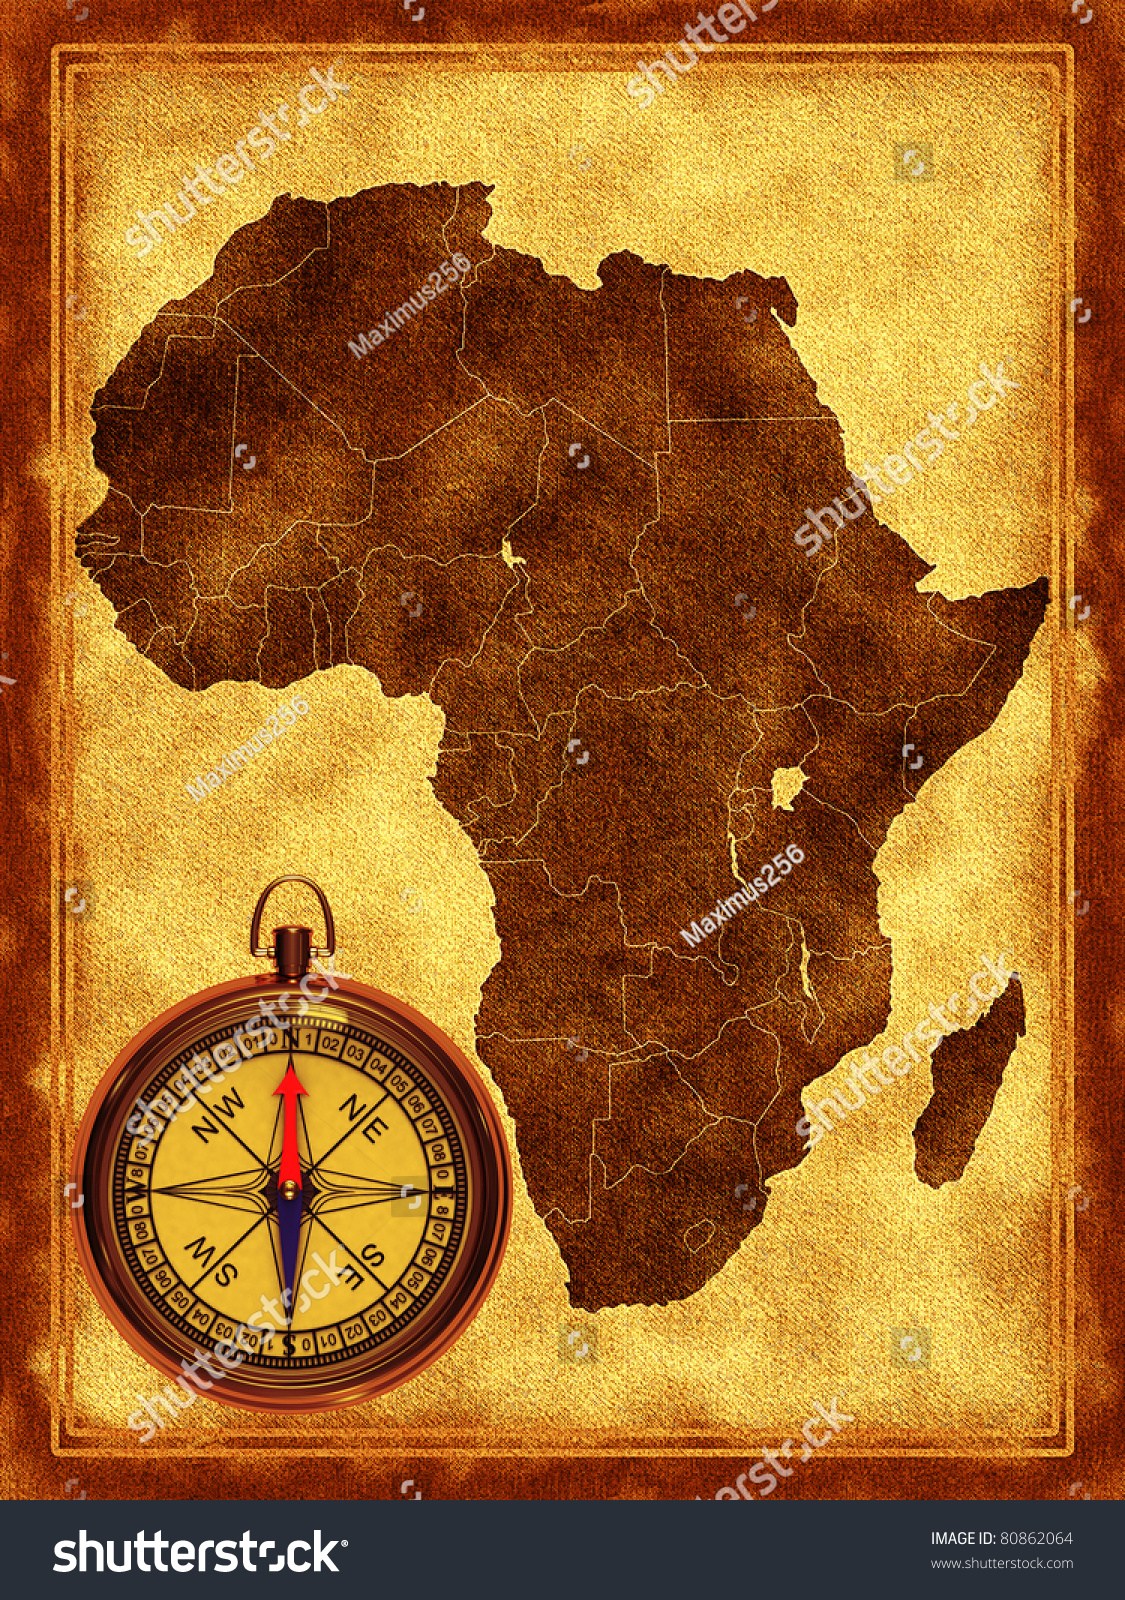 Map africa on old background stock illustration 80862064 shutterstock map of africa on the old background gumiabroncs Images